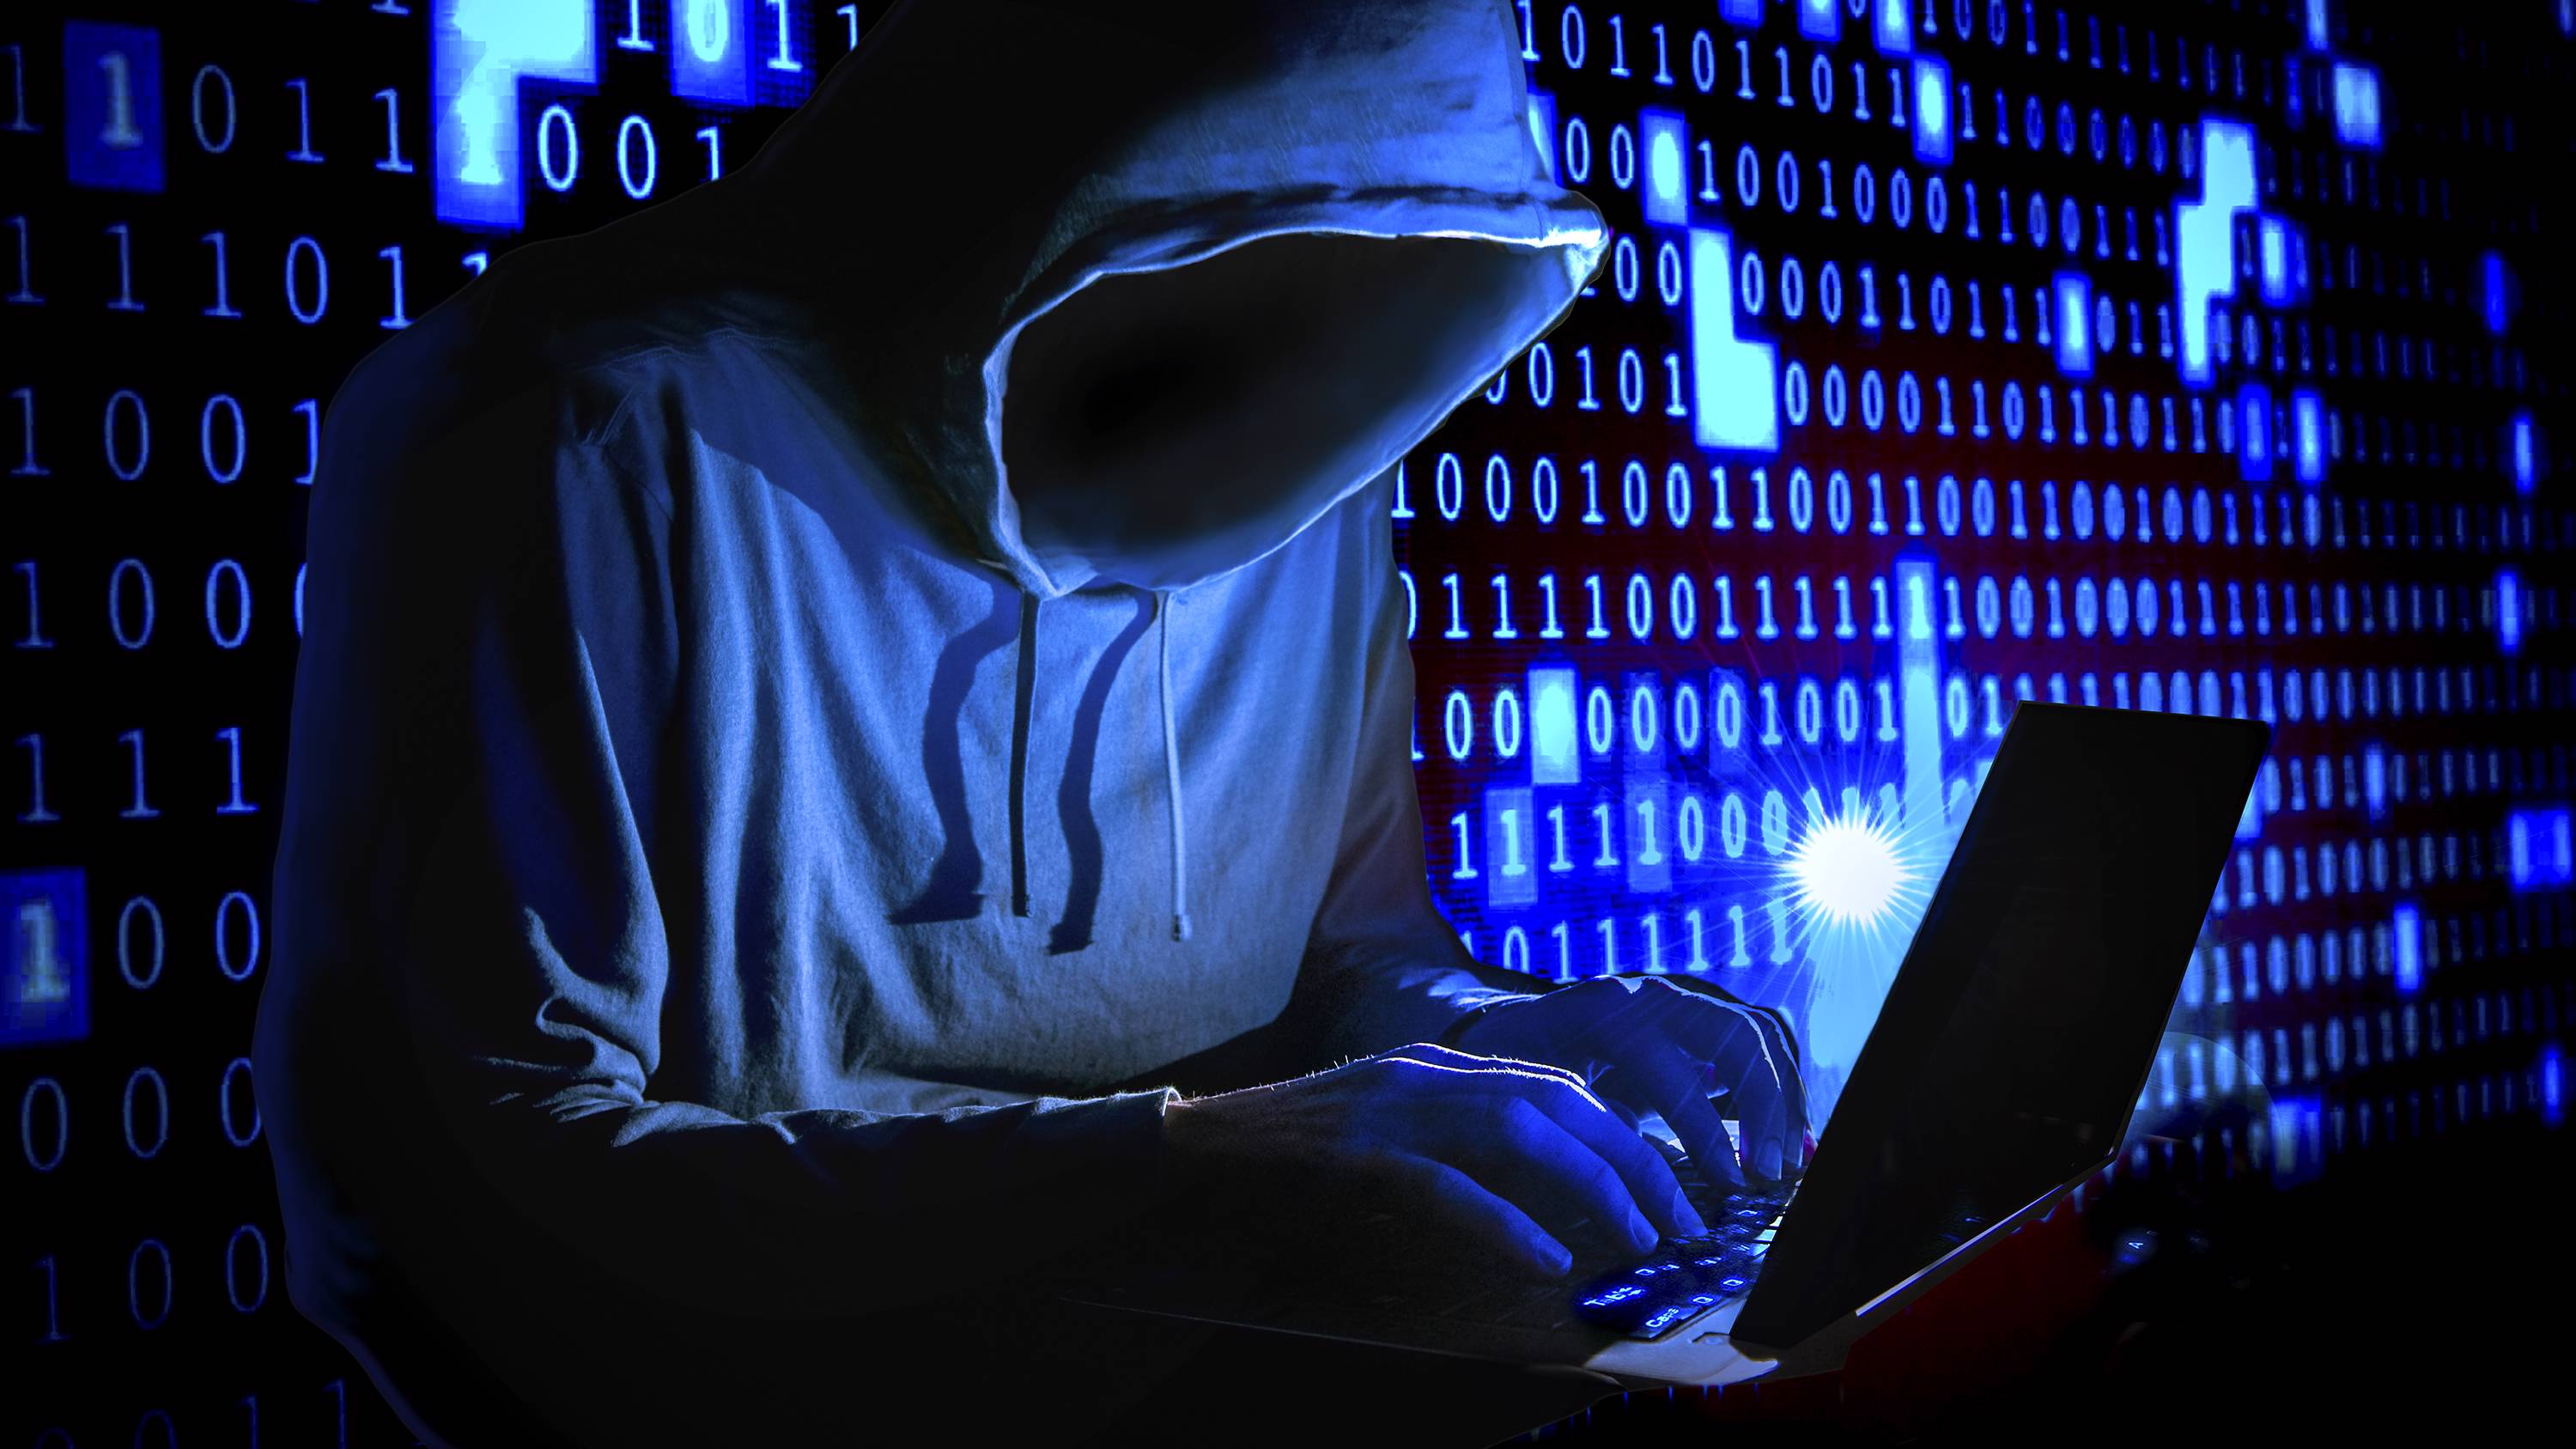 nye205_Bill HintonGetty Images_hackercyberattack